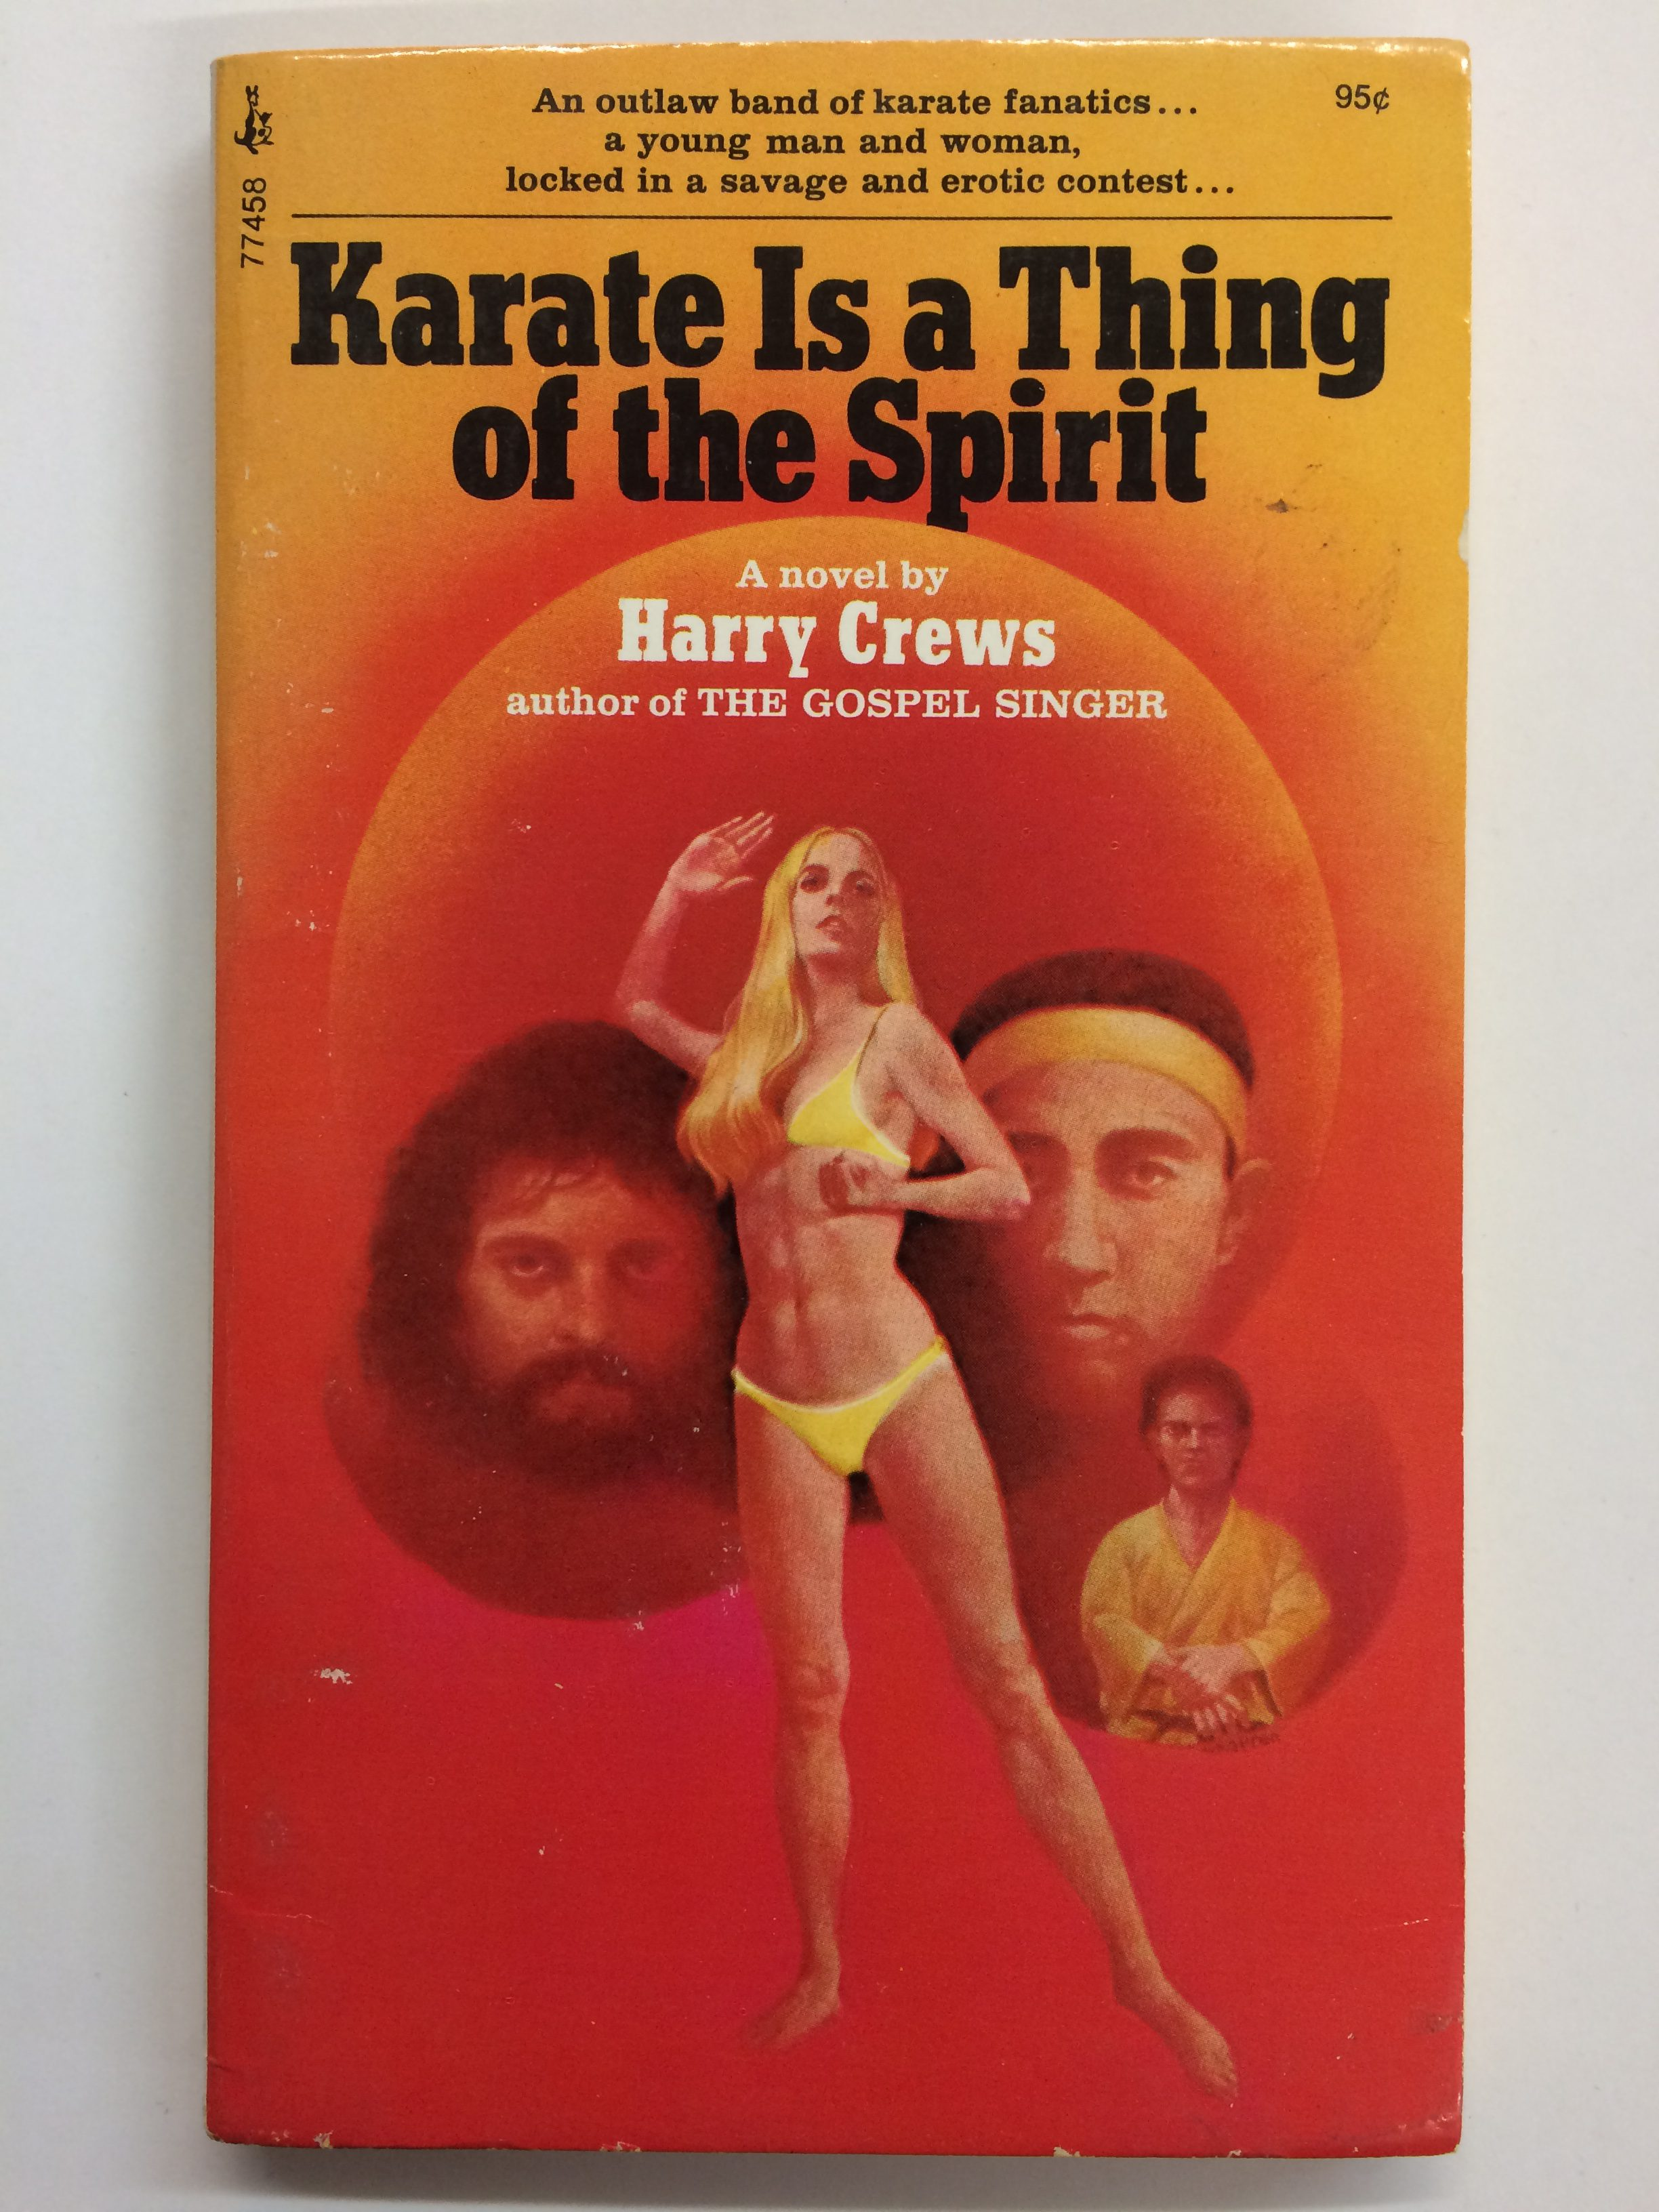 Karate is a Thing of the Spirit, Harry crews